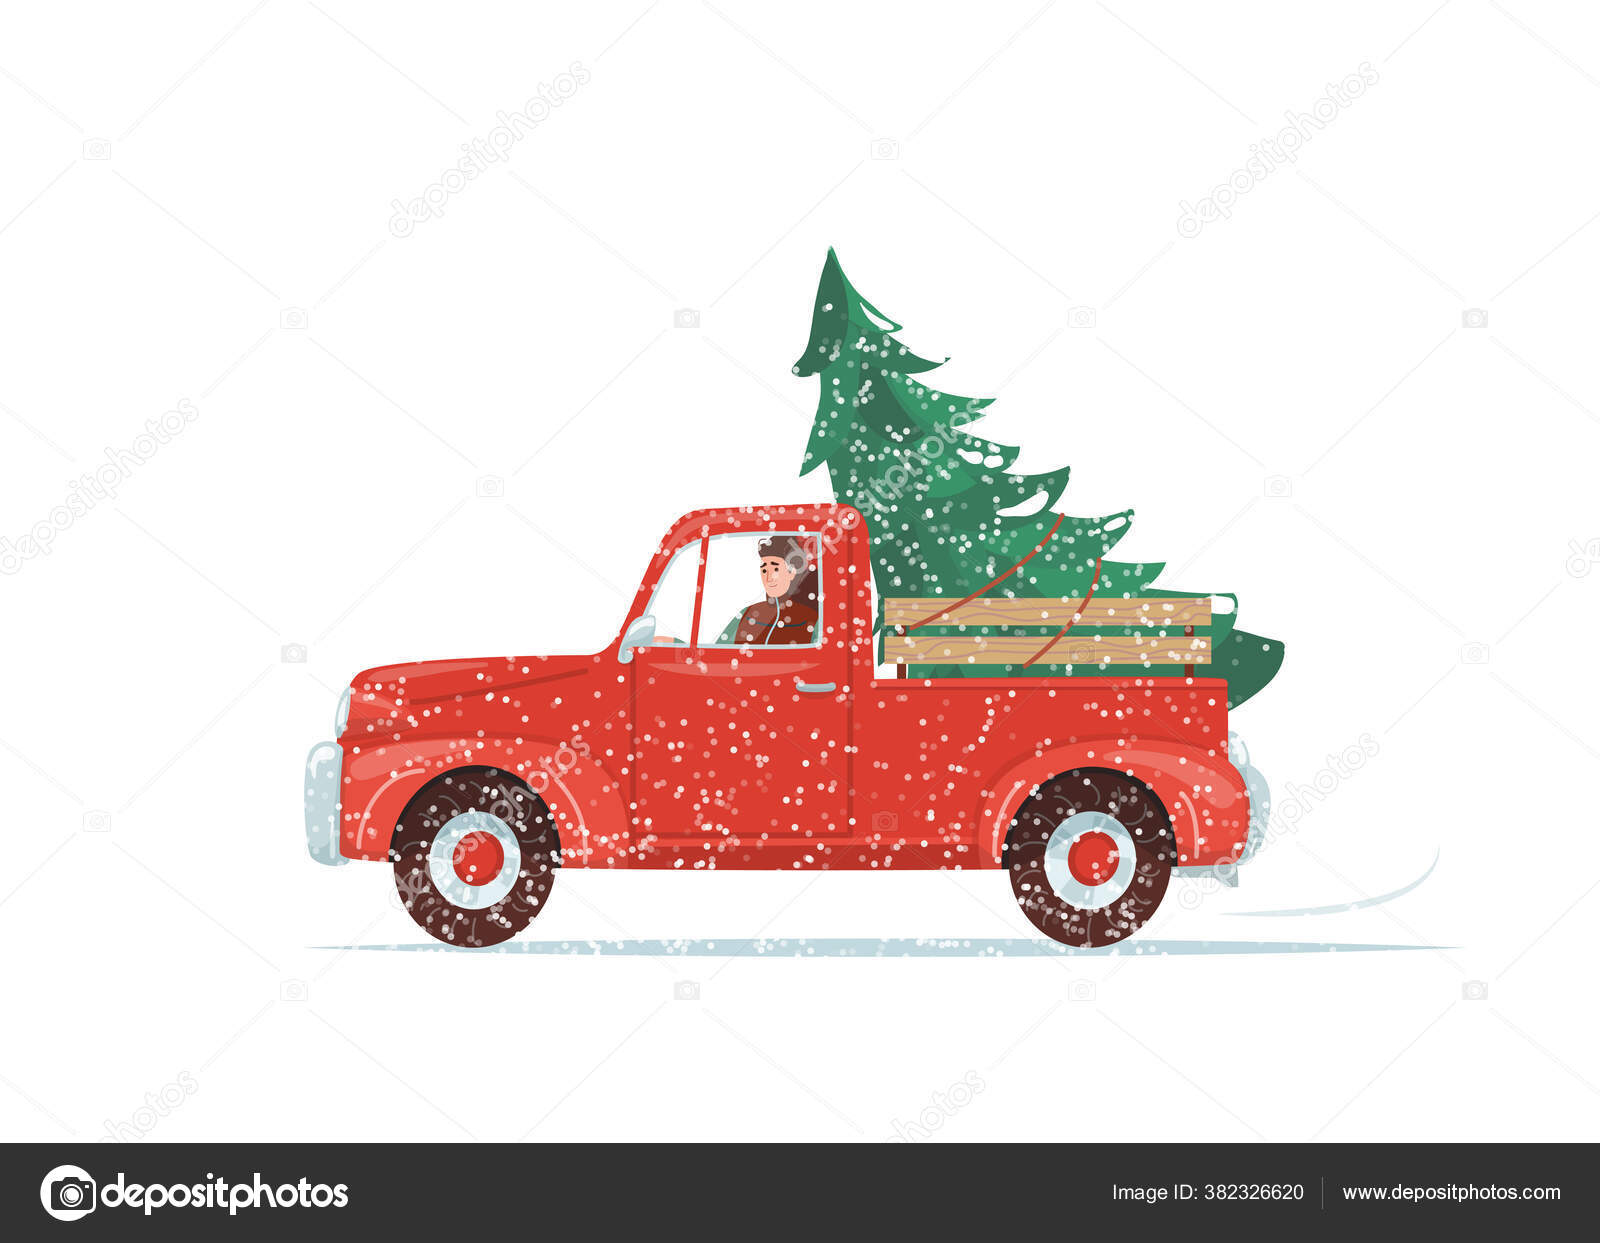 Vintage Christmas Truck Vector Images Royalty Free Vintage Christmas Truck Vectors Page 2 Depositphotos